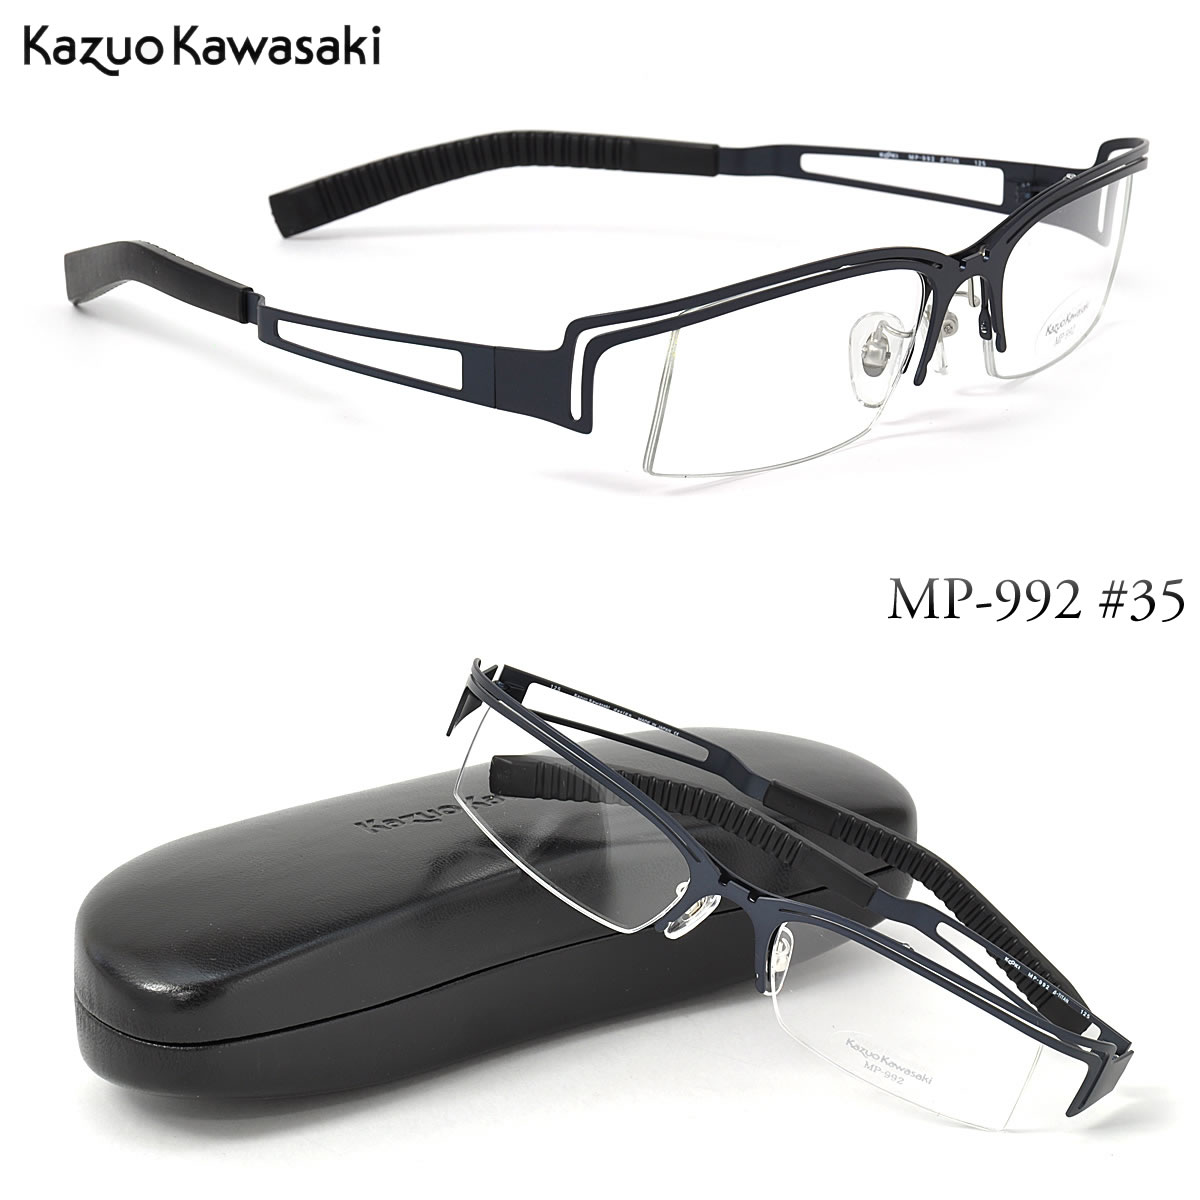 Optical Shop Thats Rakuten Global Market: Kawasaki Kazuo ...